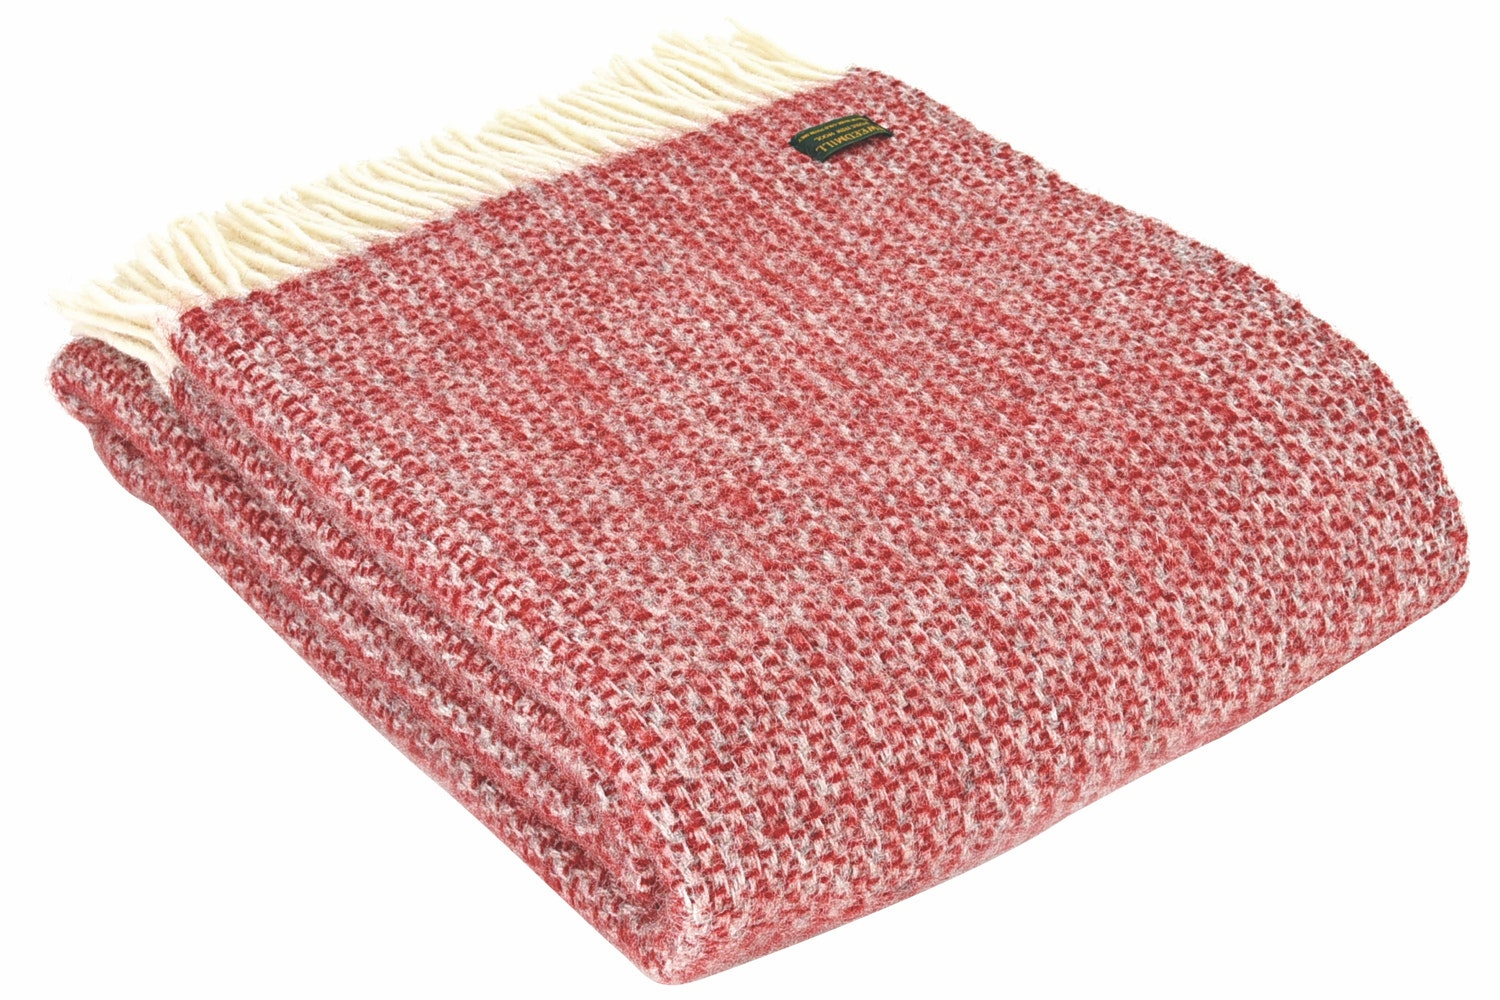 Illusion Throw | Red & Silver